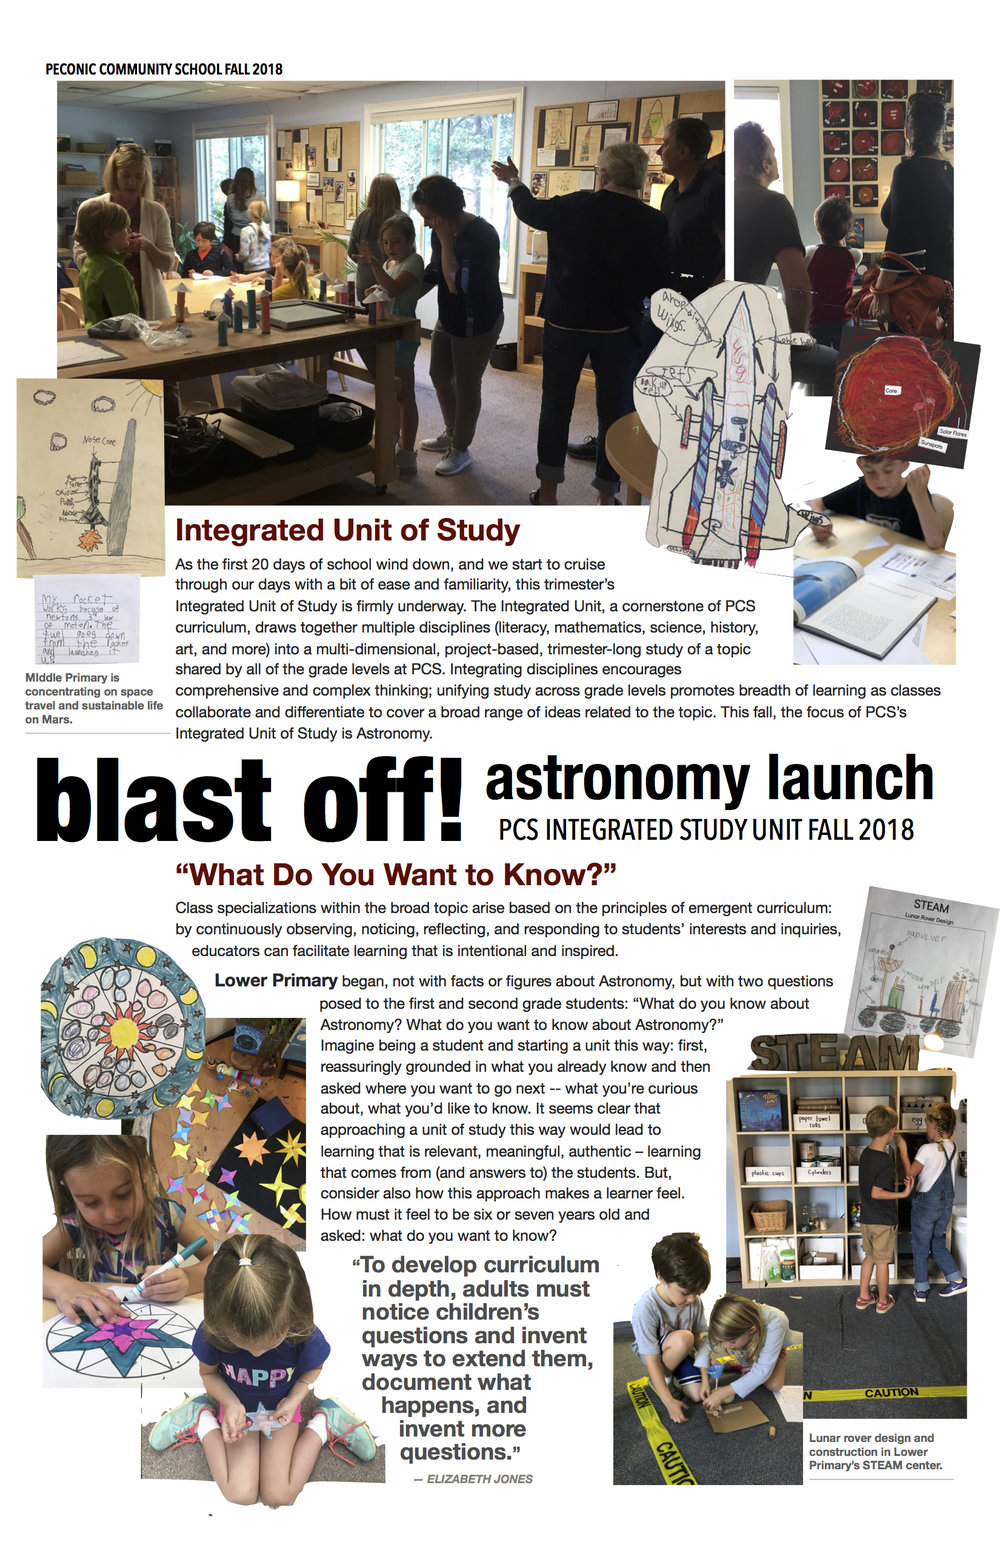 astonomy launch 2018-19 page 1 JPEG.jpg